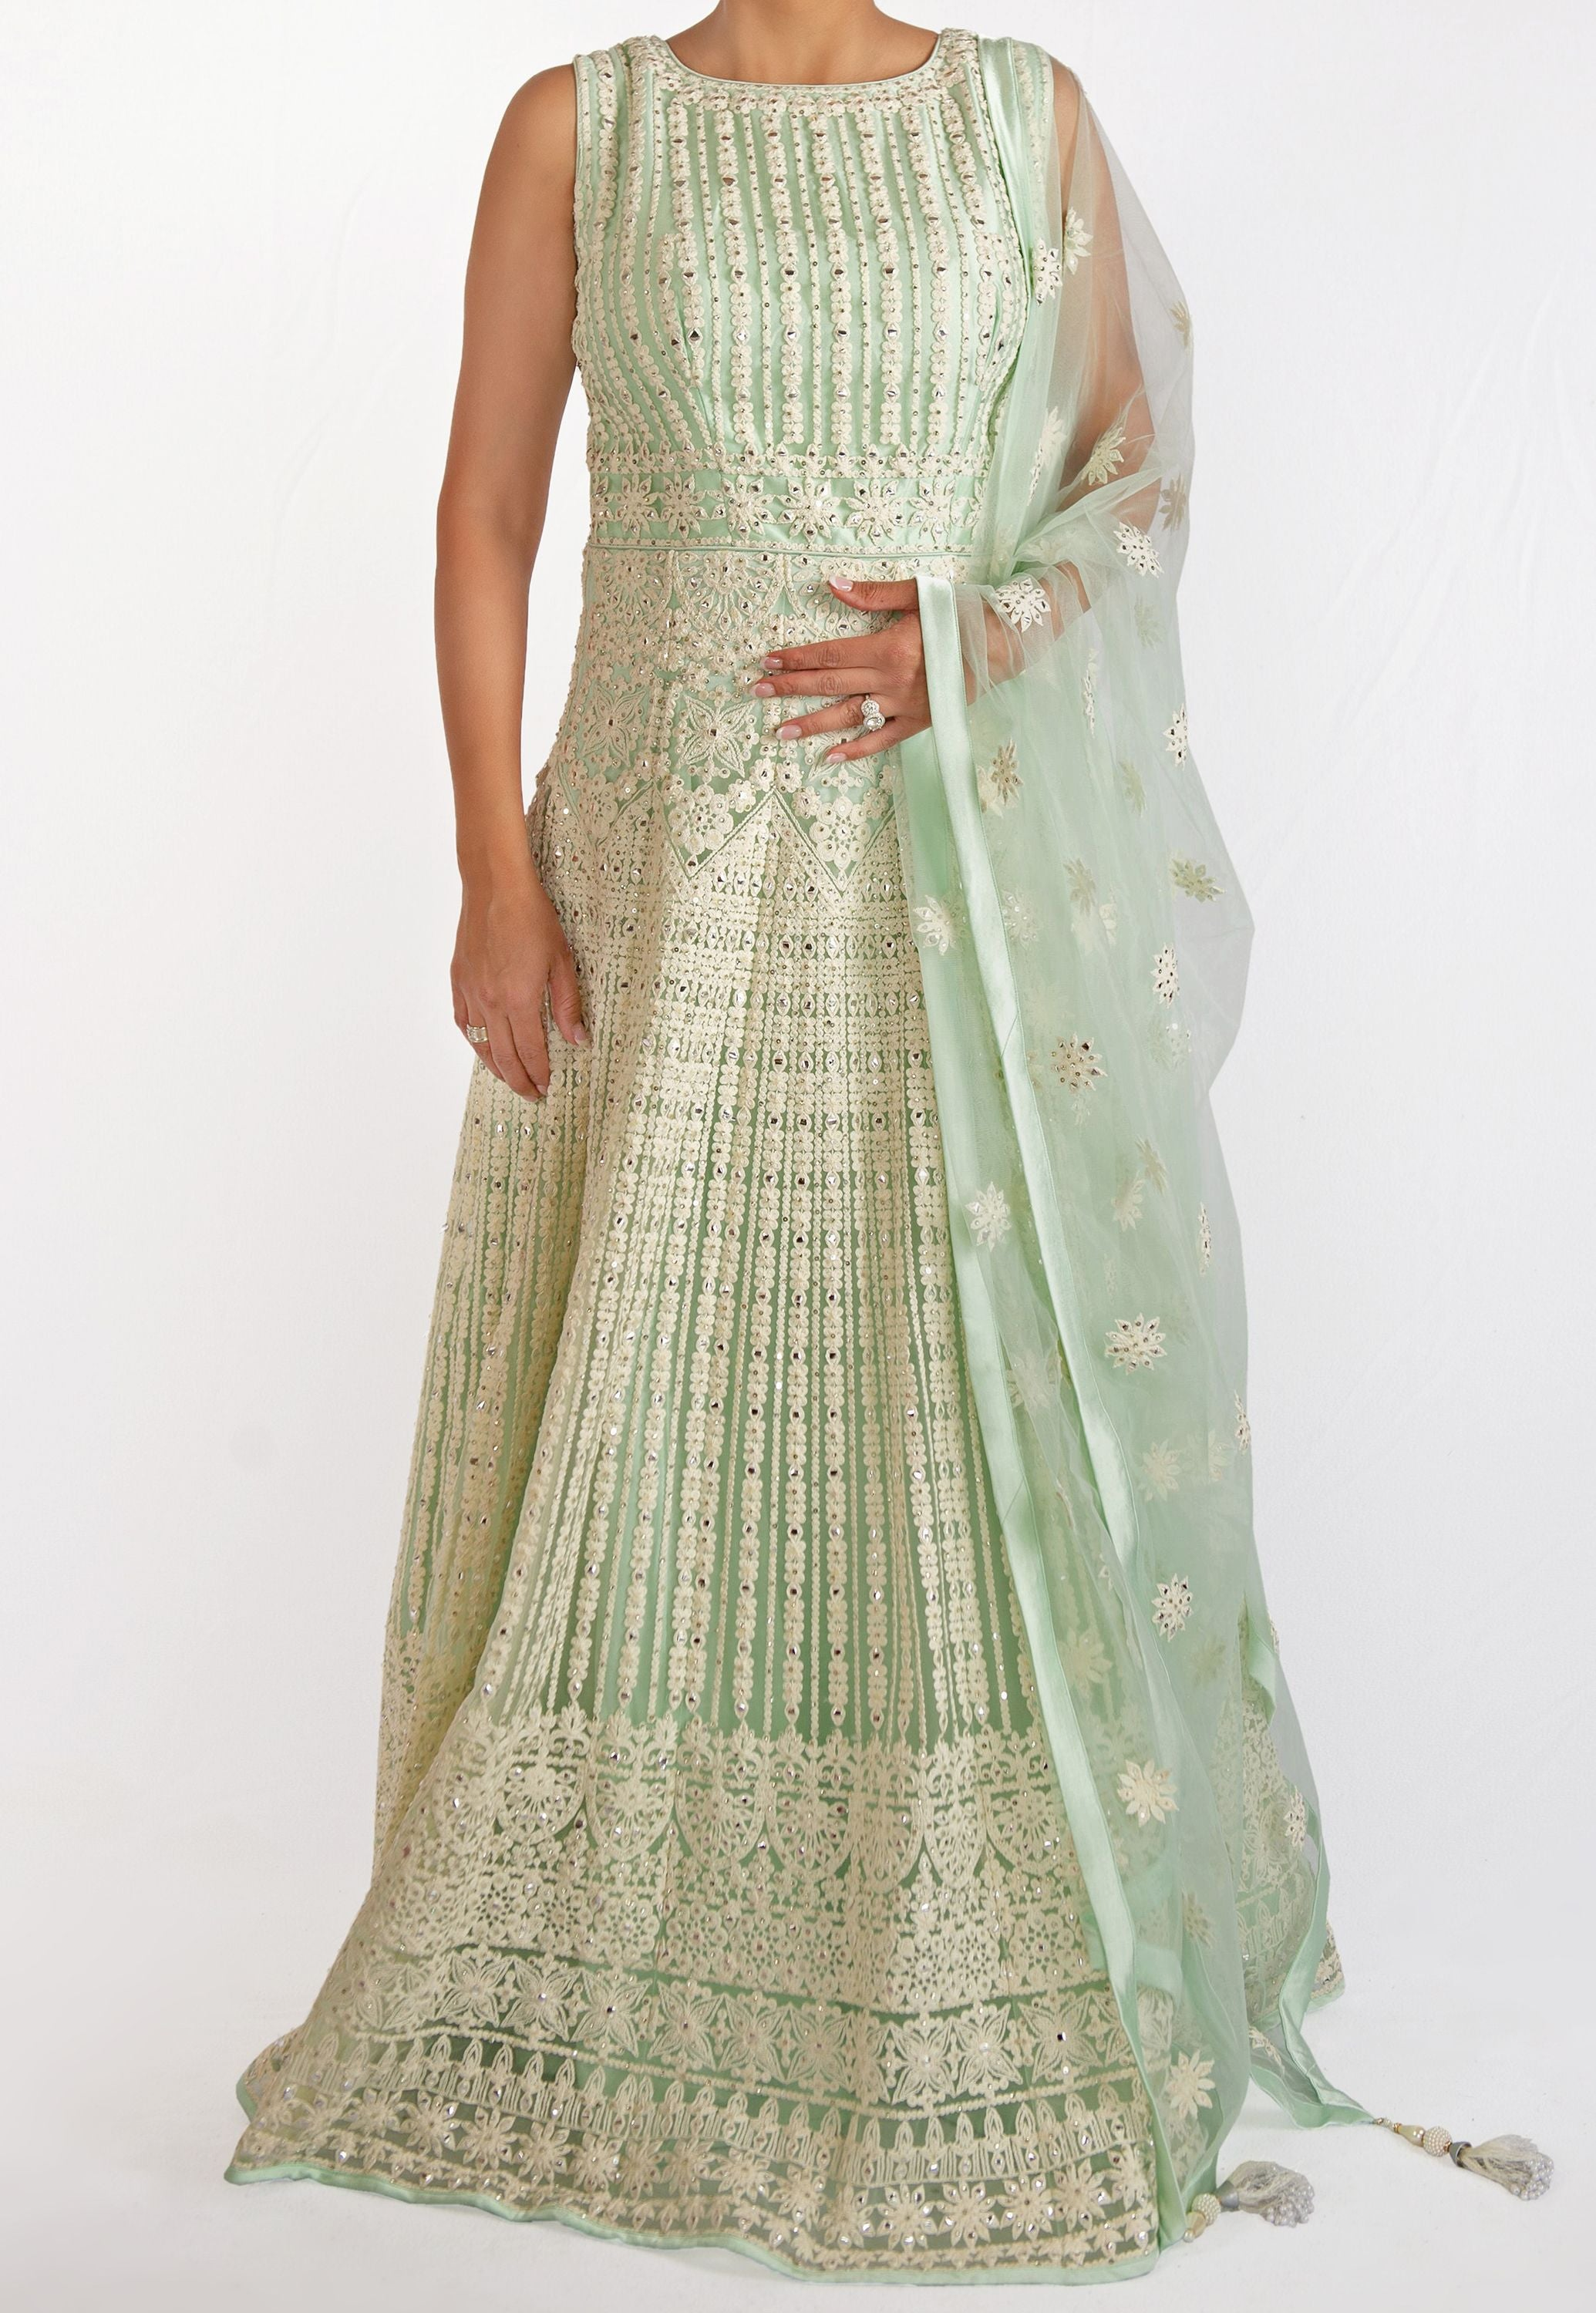 FULLY EMBROIDERED ANARKALI WITH SWAROVSKI CRYSTALS